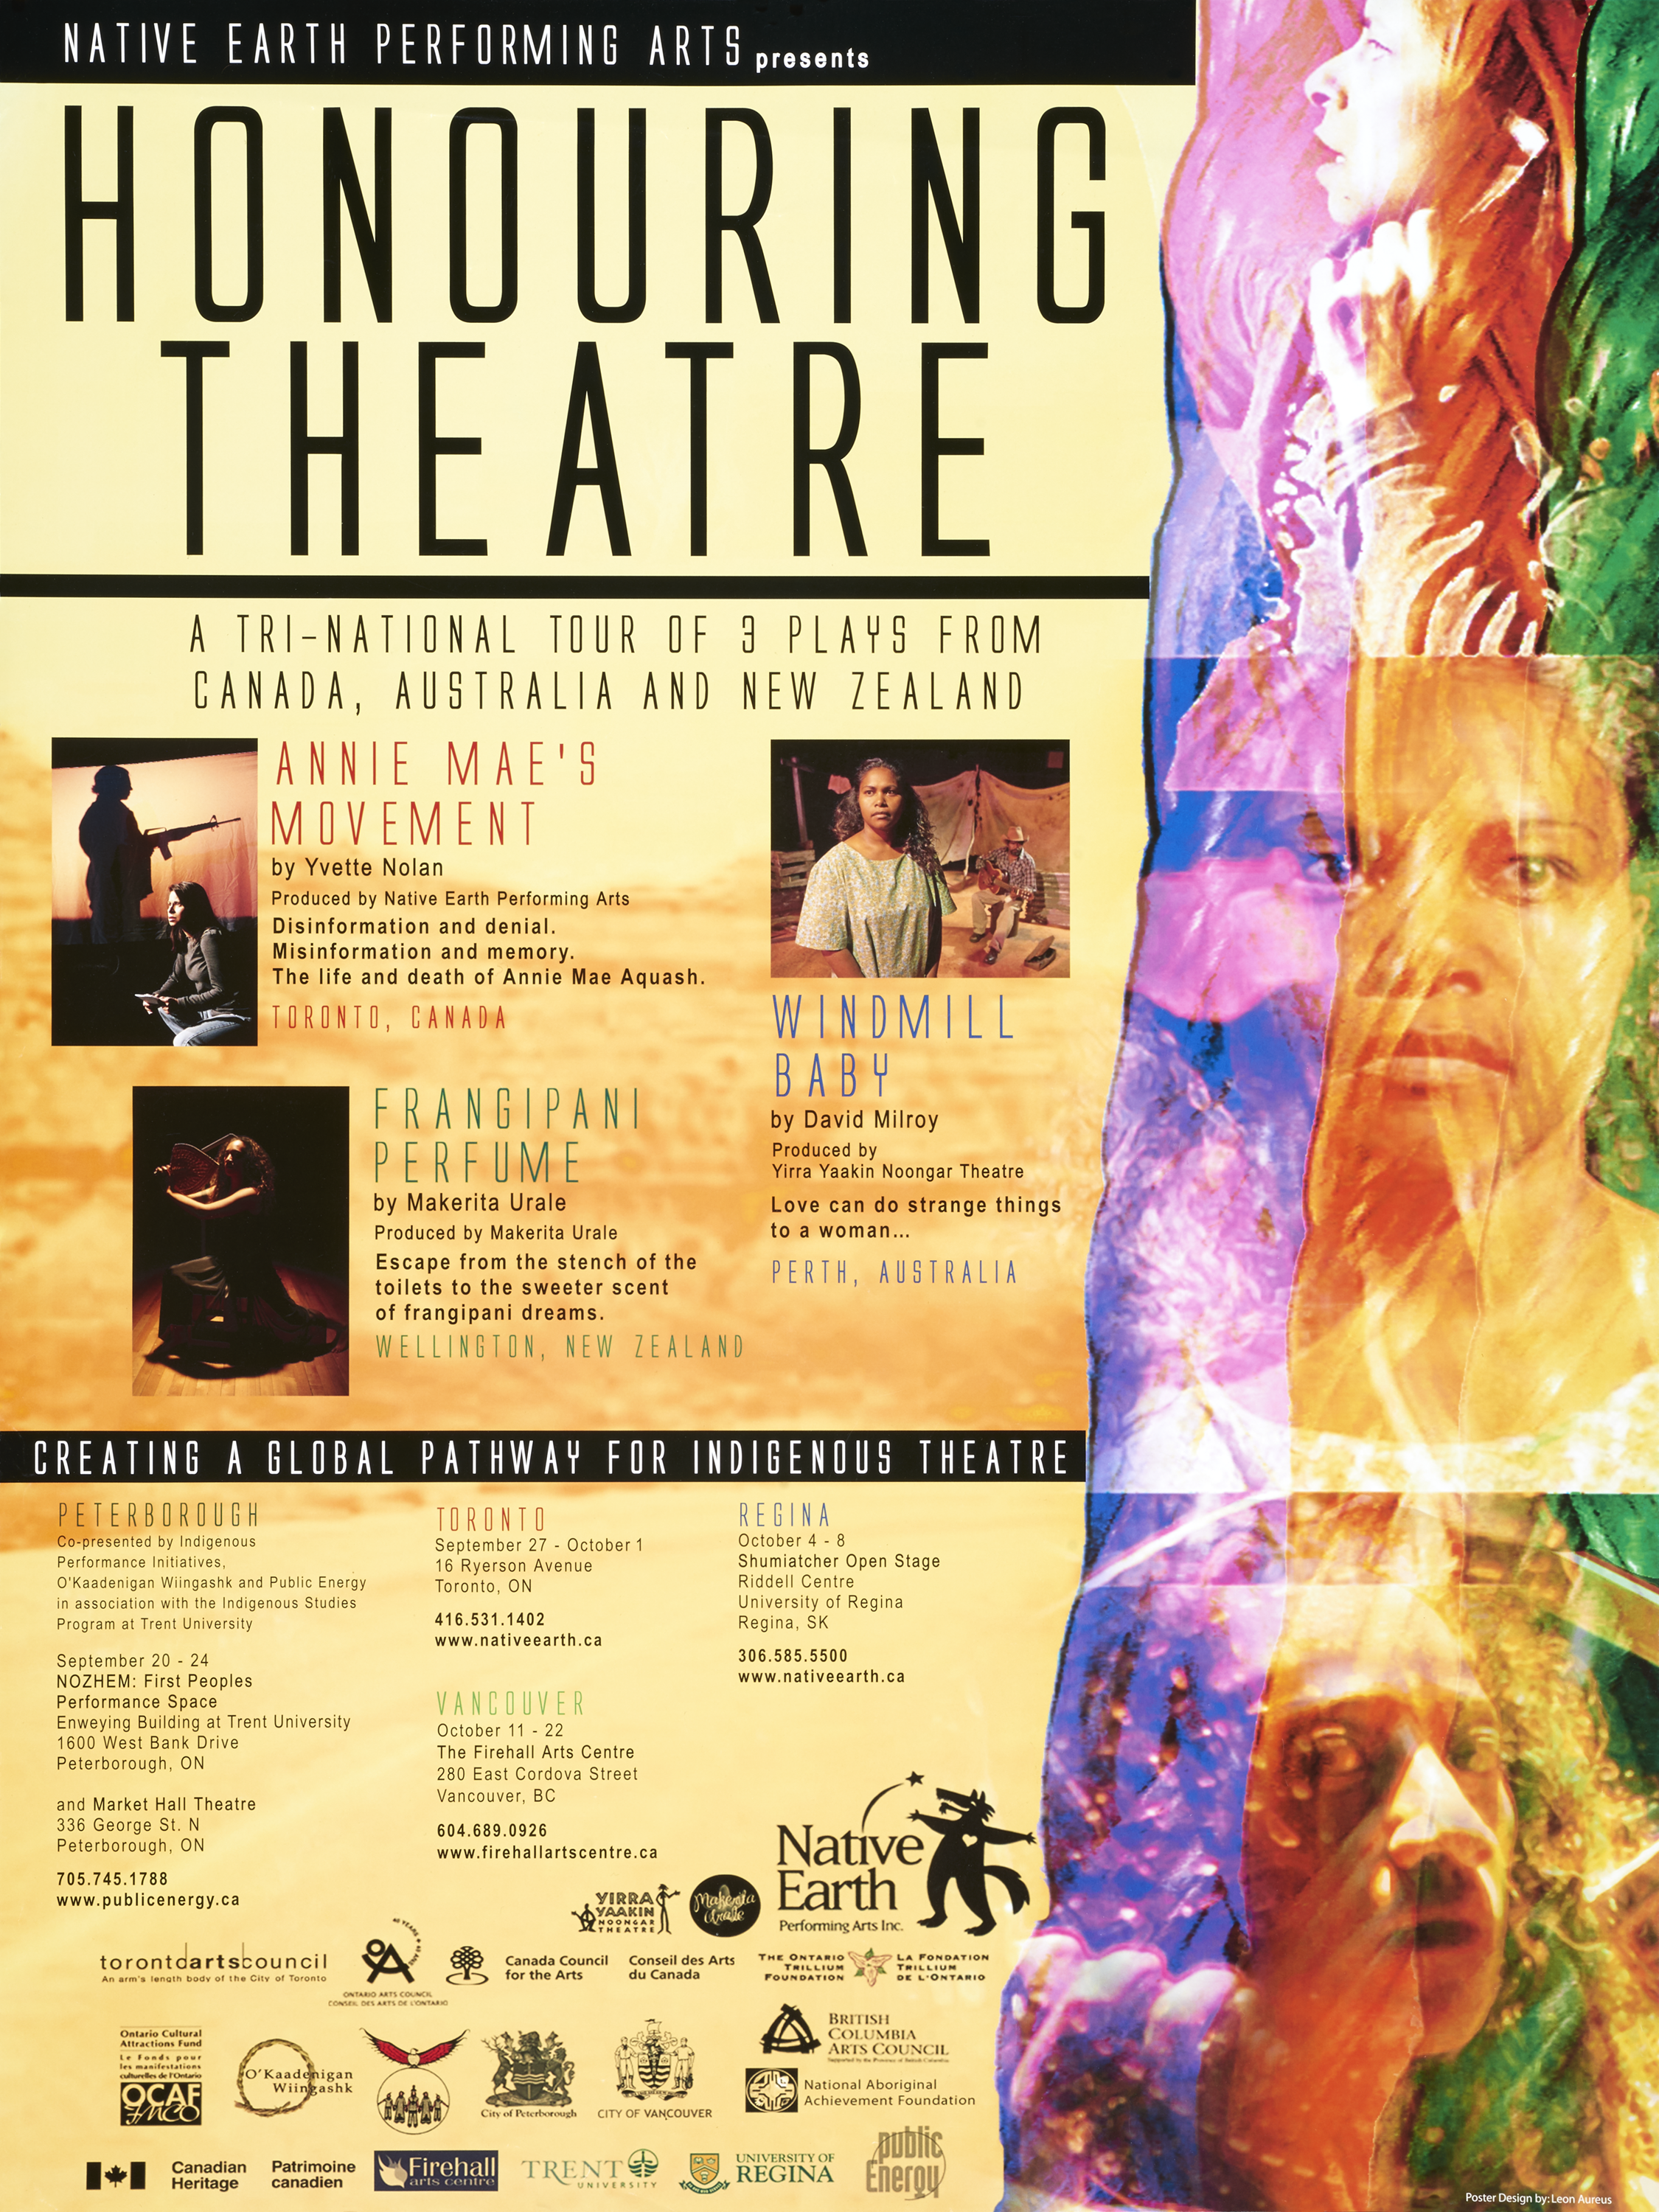 Poster for Honouring Theatre by Native Earth Performing Arts